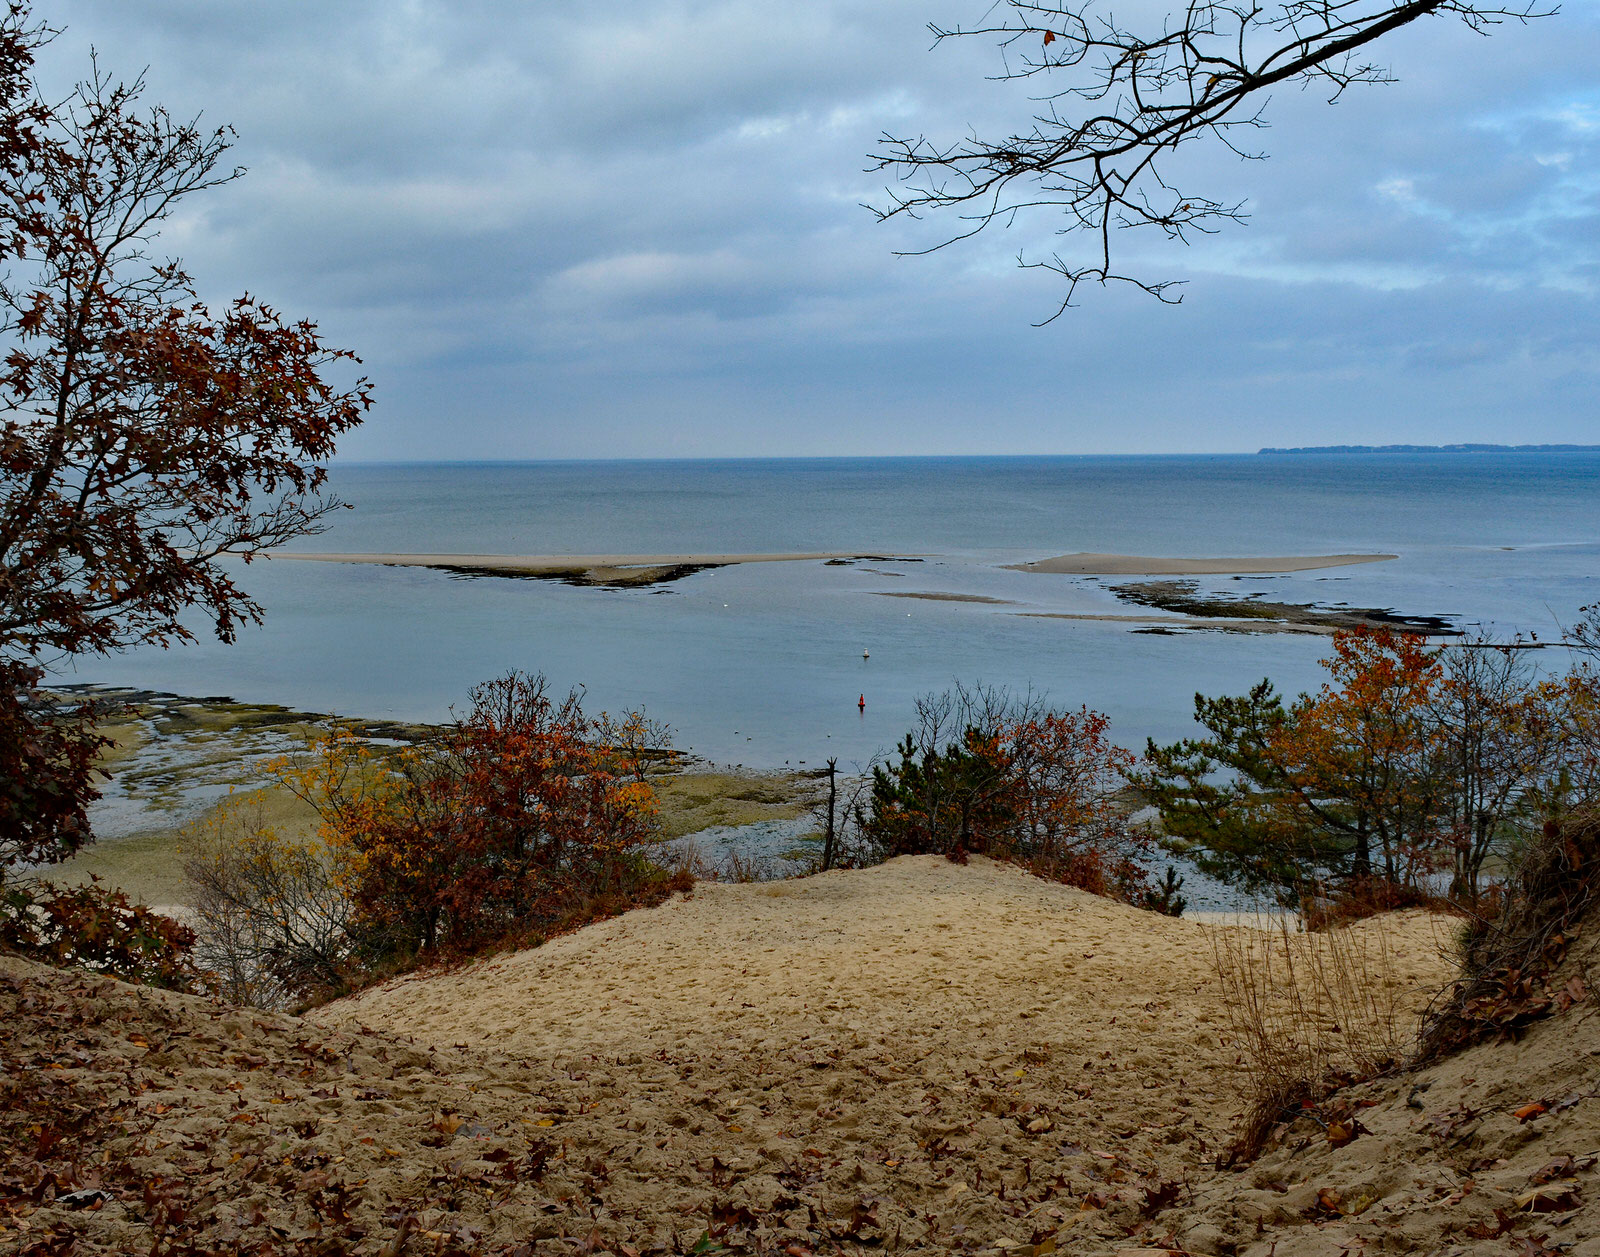 photo: View of Mouth of the Nissequogue River form Greenbelt Trail. Photo by Dorothy Chanin.